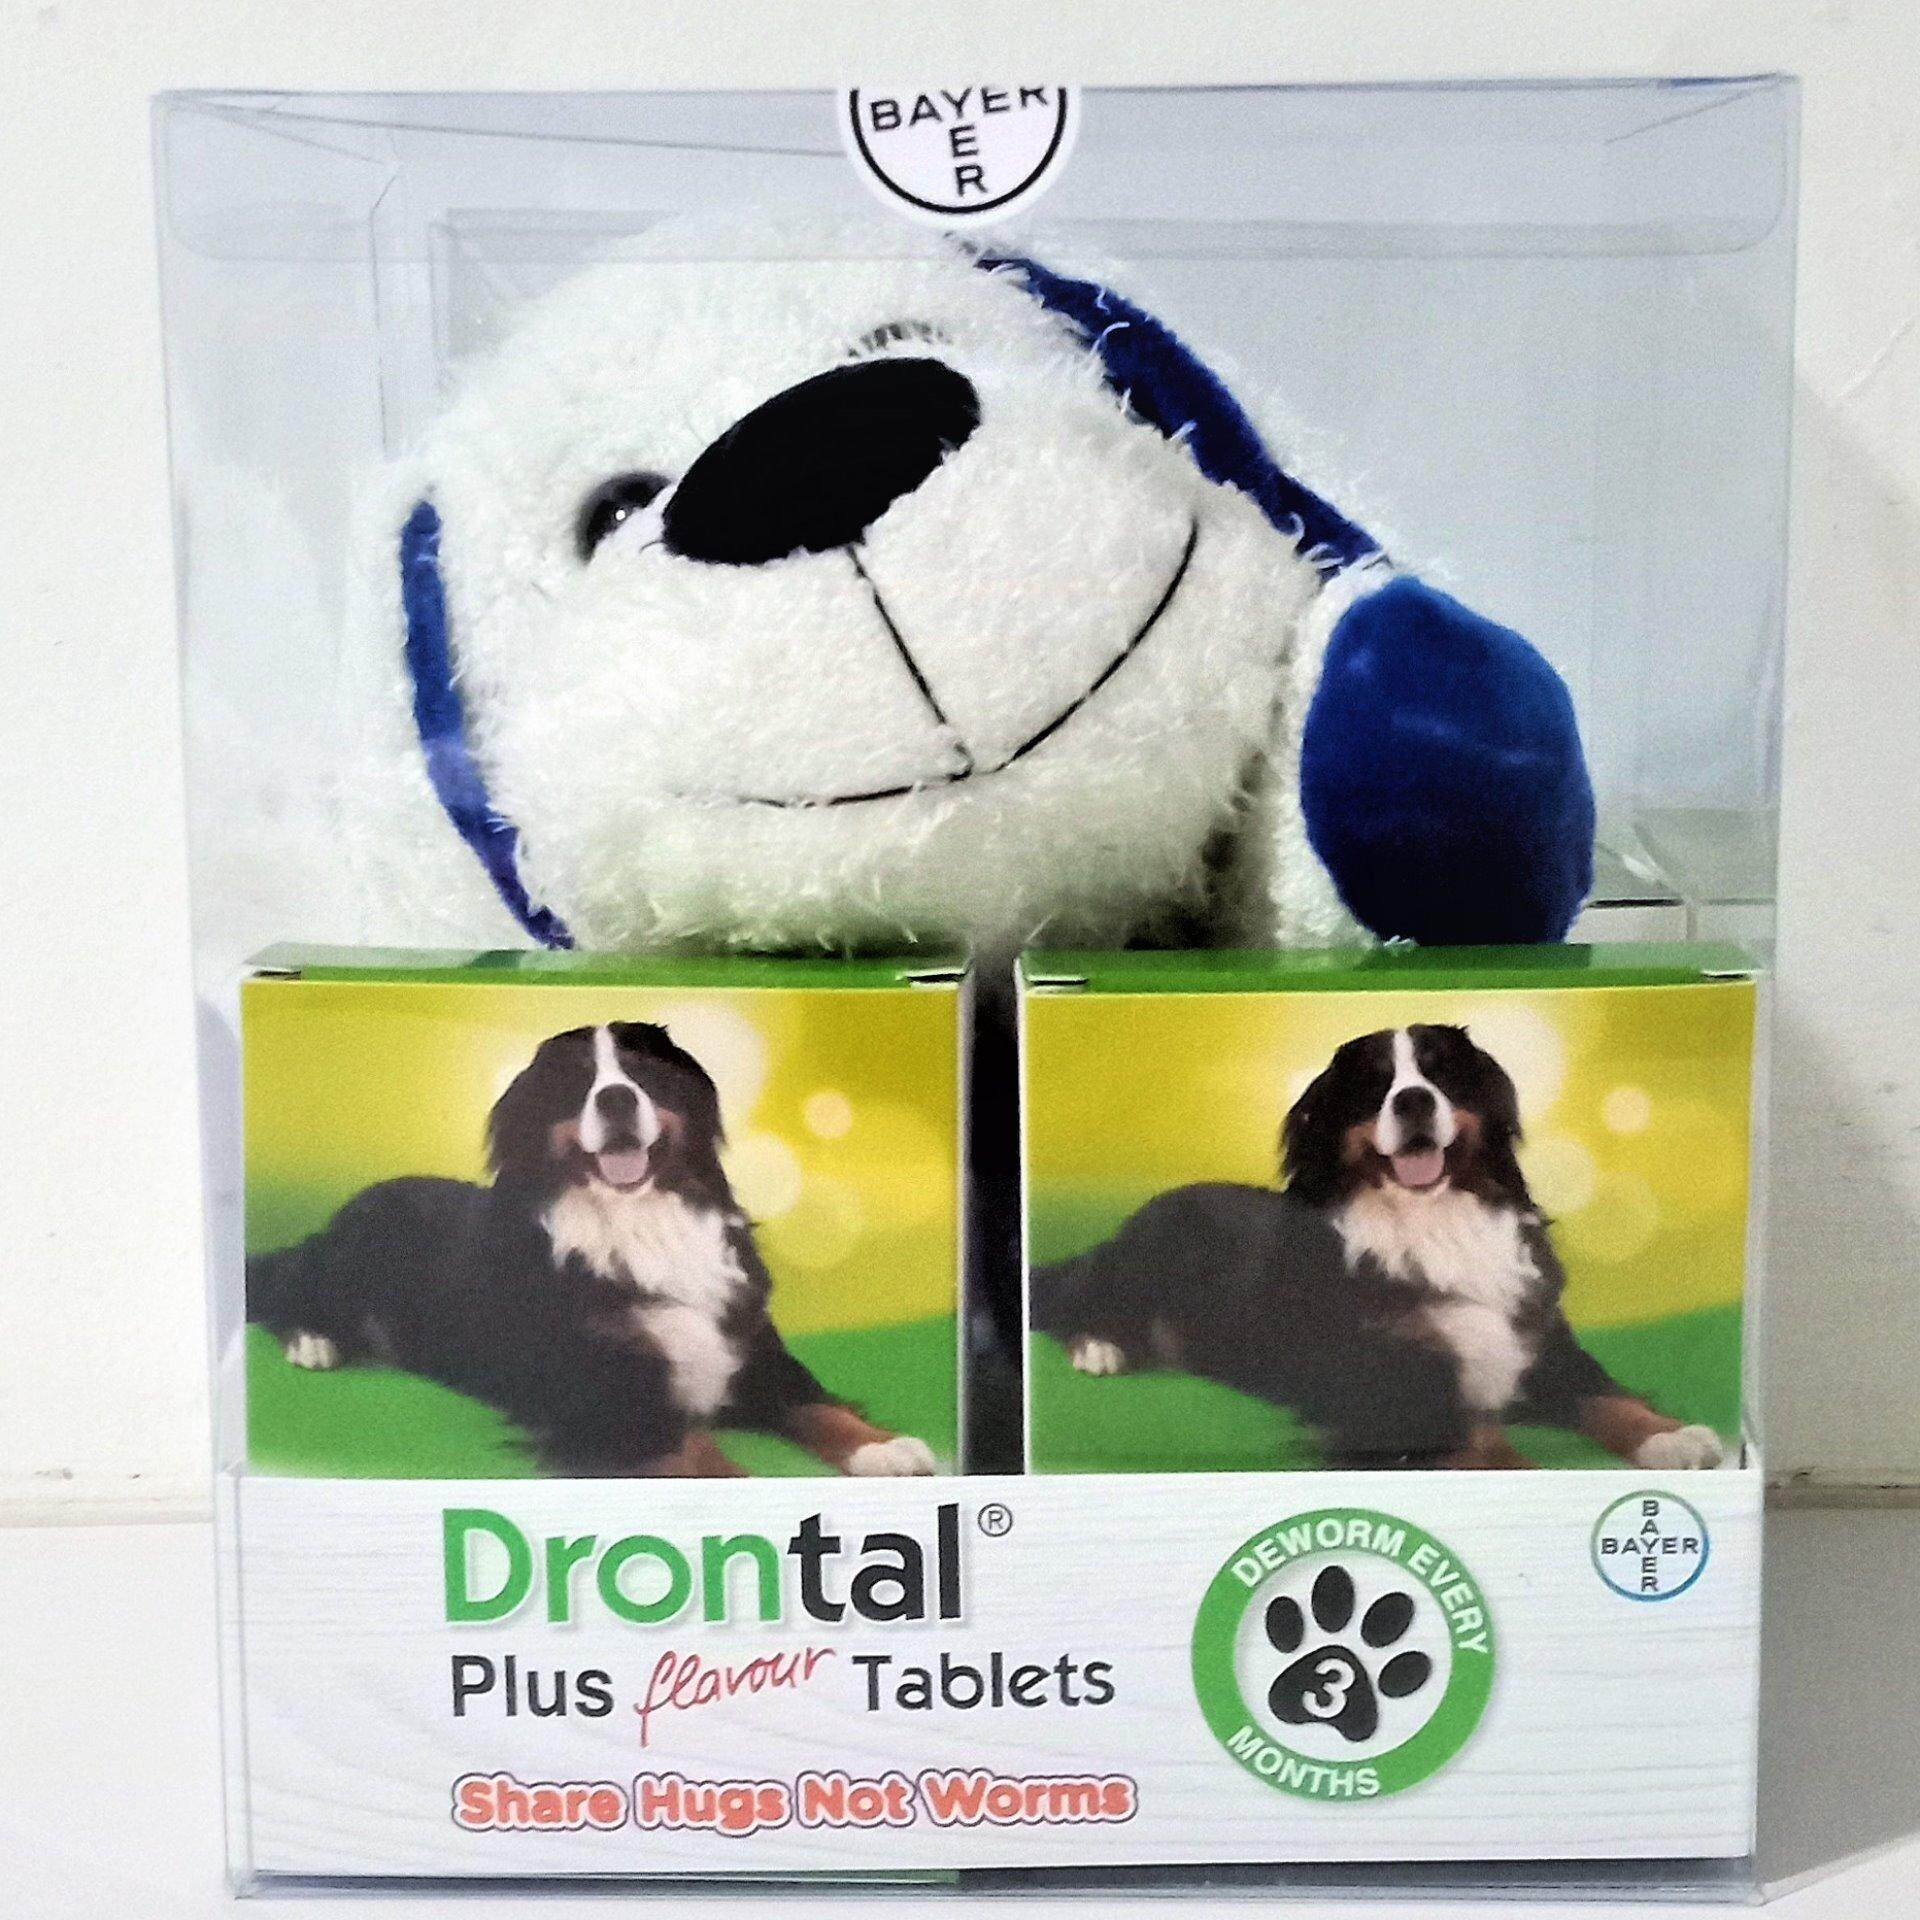 Drontal Plus Flavour Tablets Malaysia